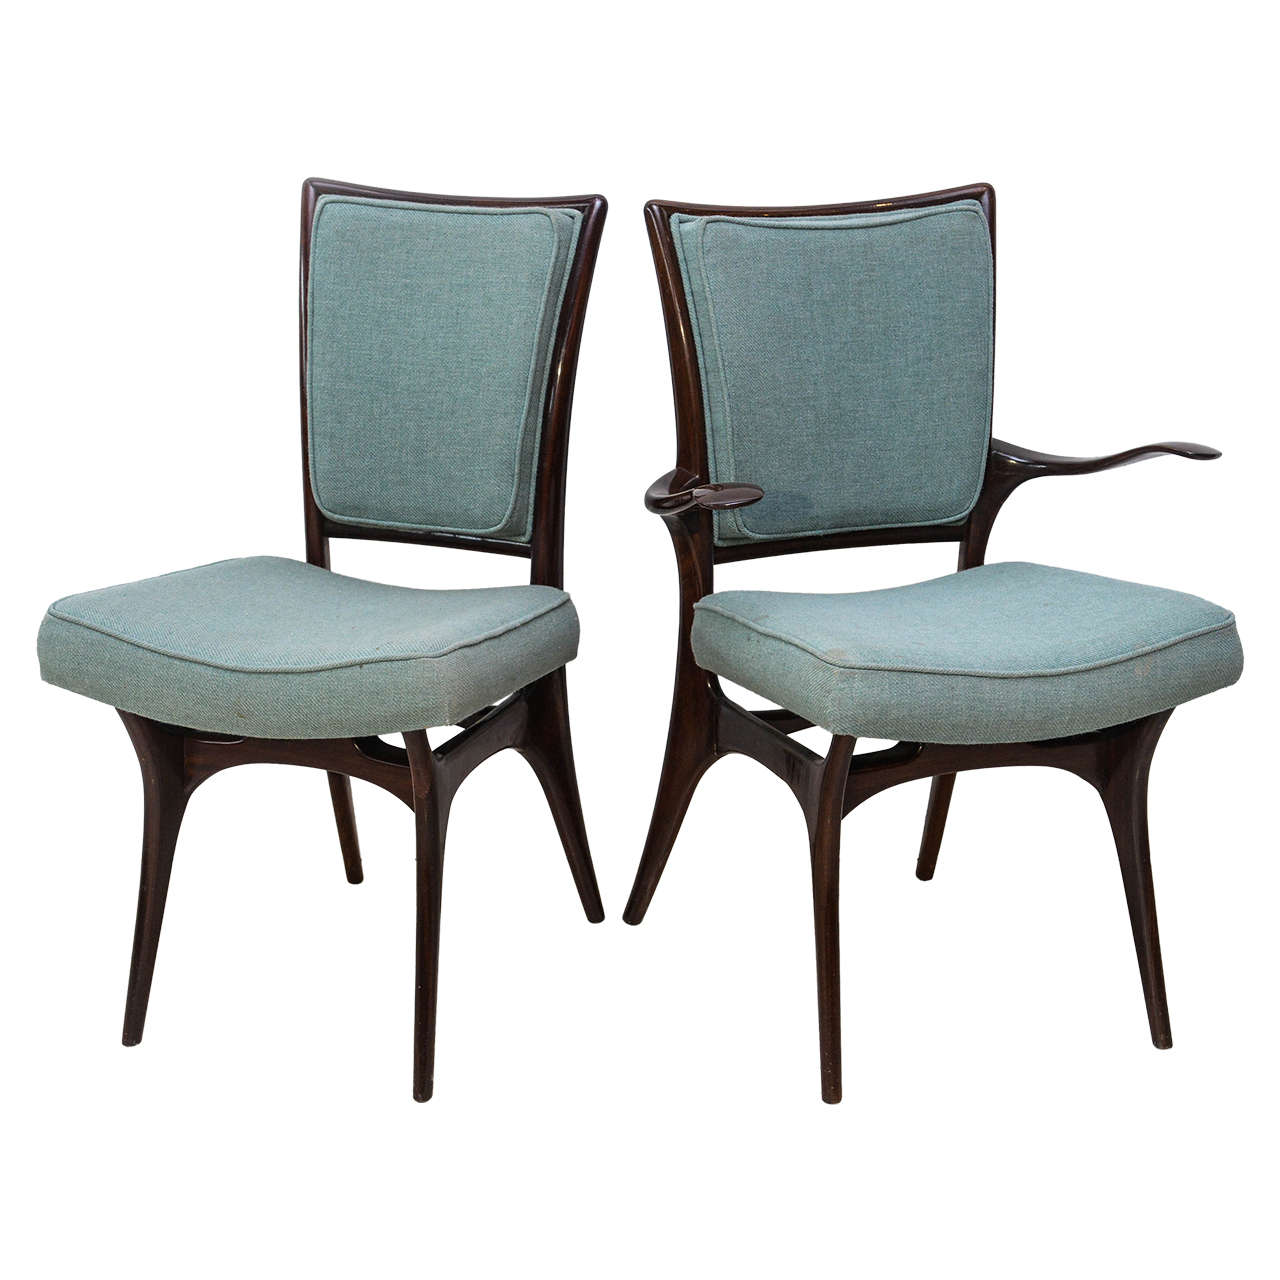 Set of Four American Modern Dark Walnut Dining Chairs, Vladimir Kagan